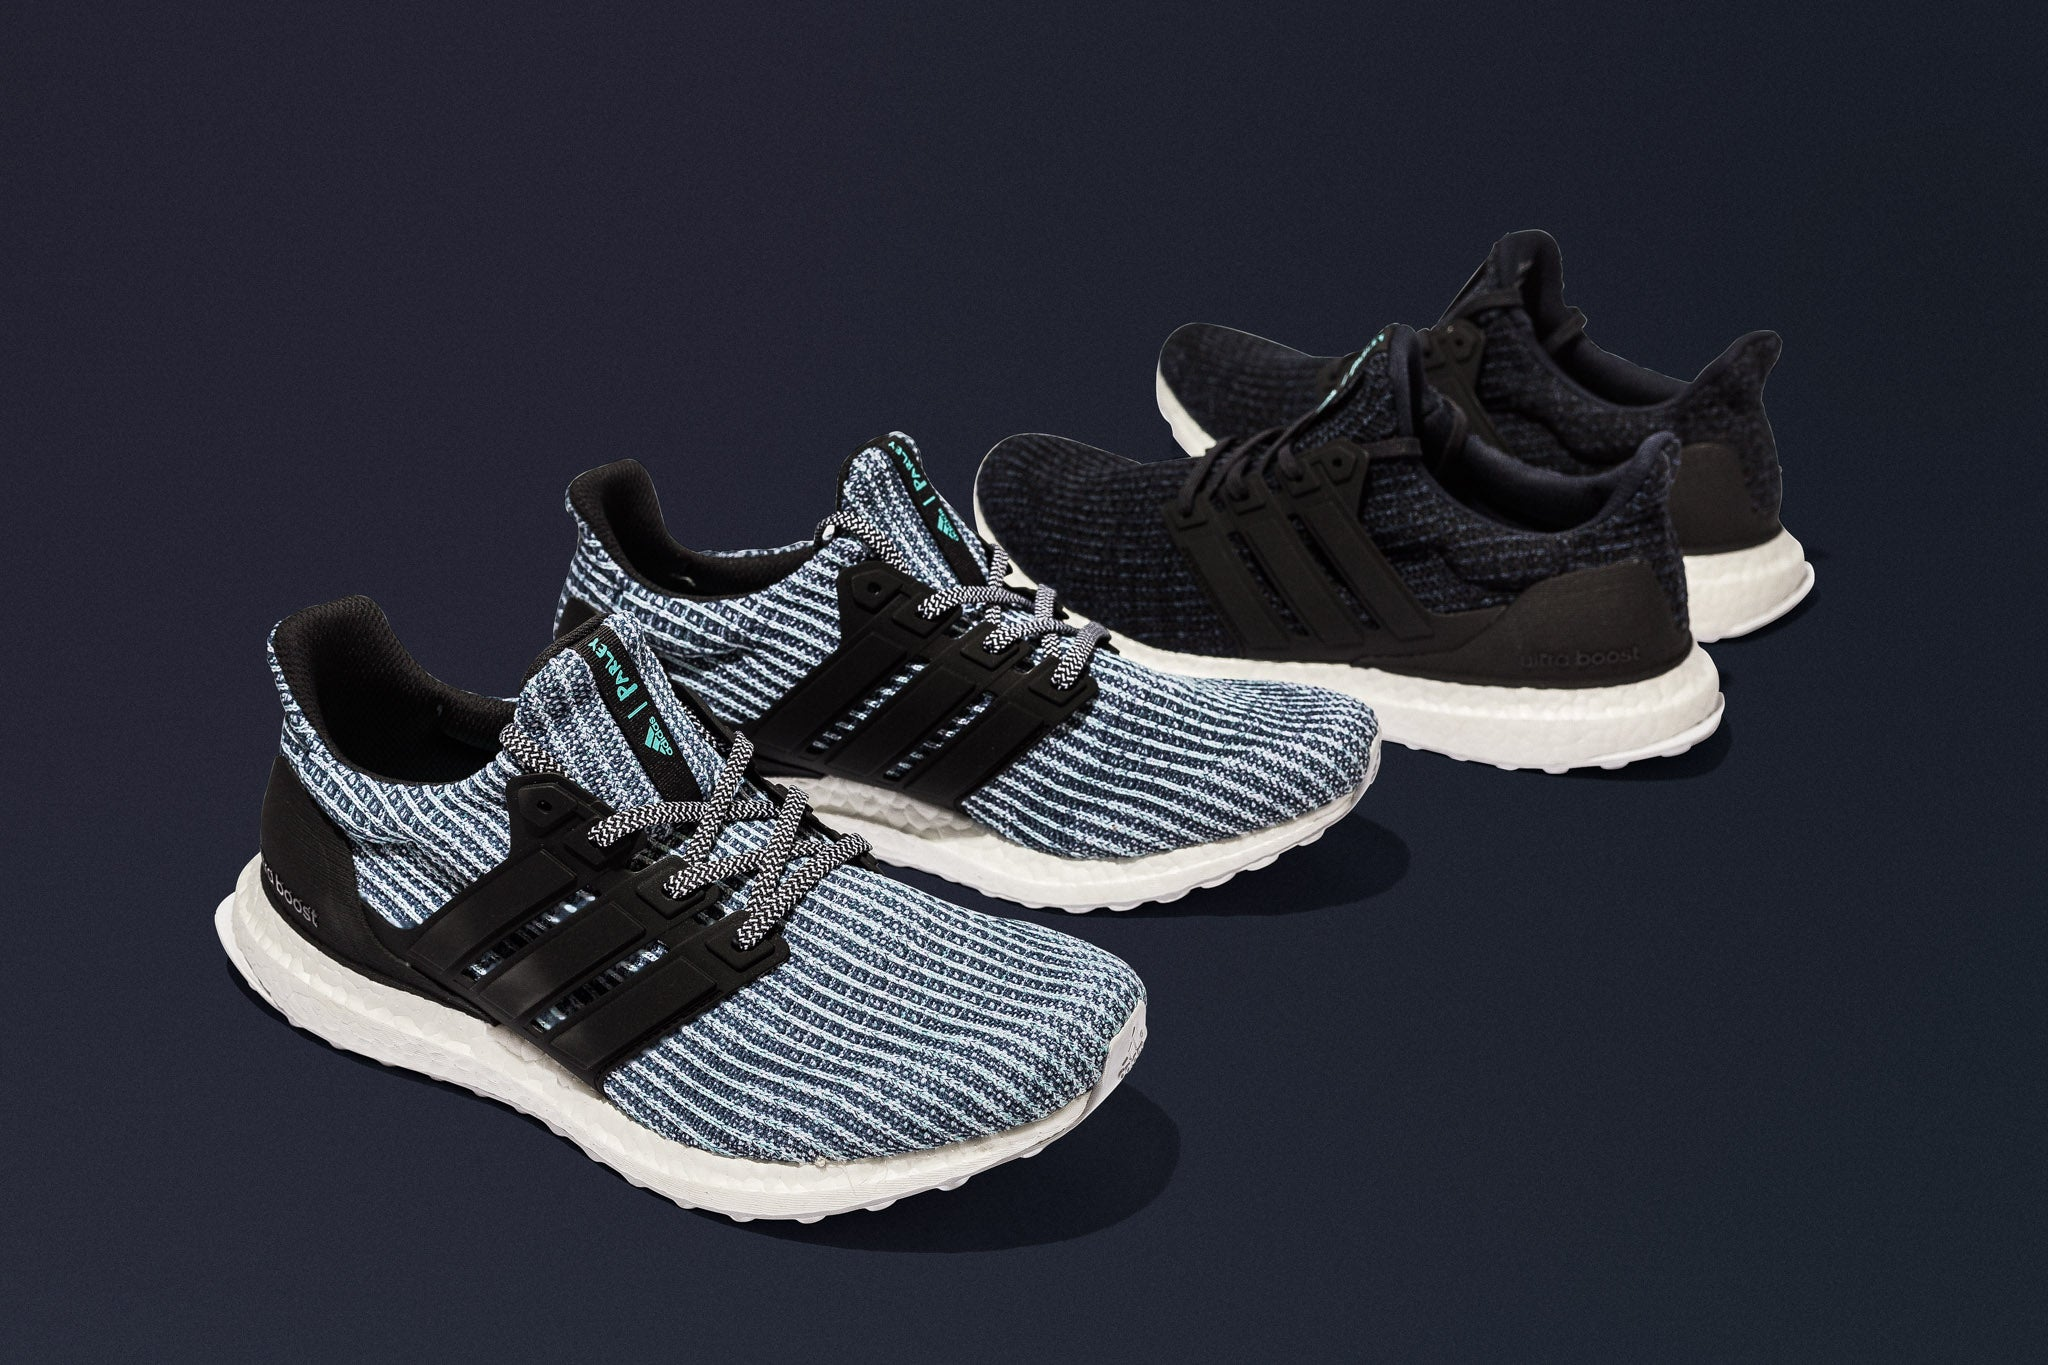 adidas x Parley Ultraboost Collection 06.27.18